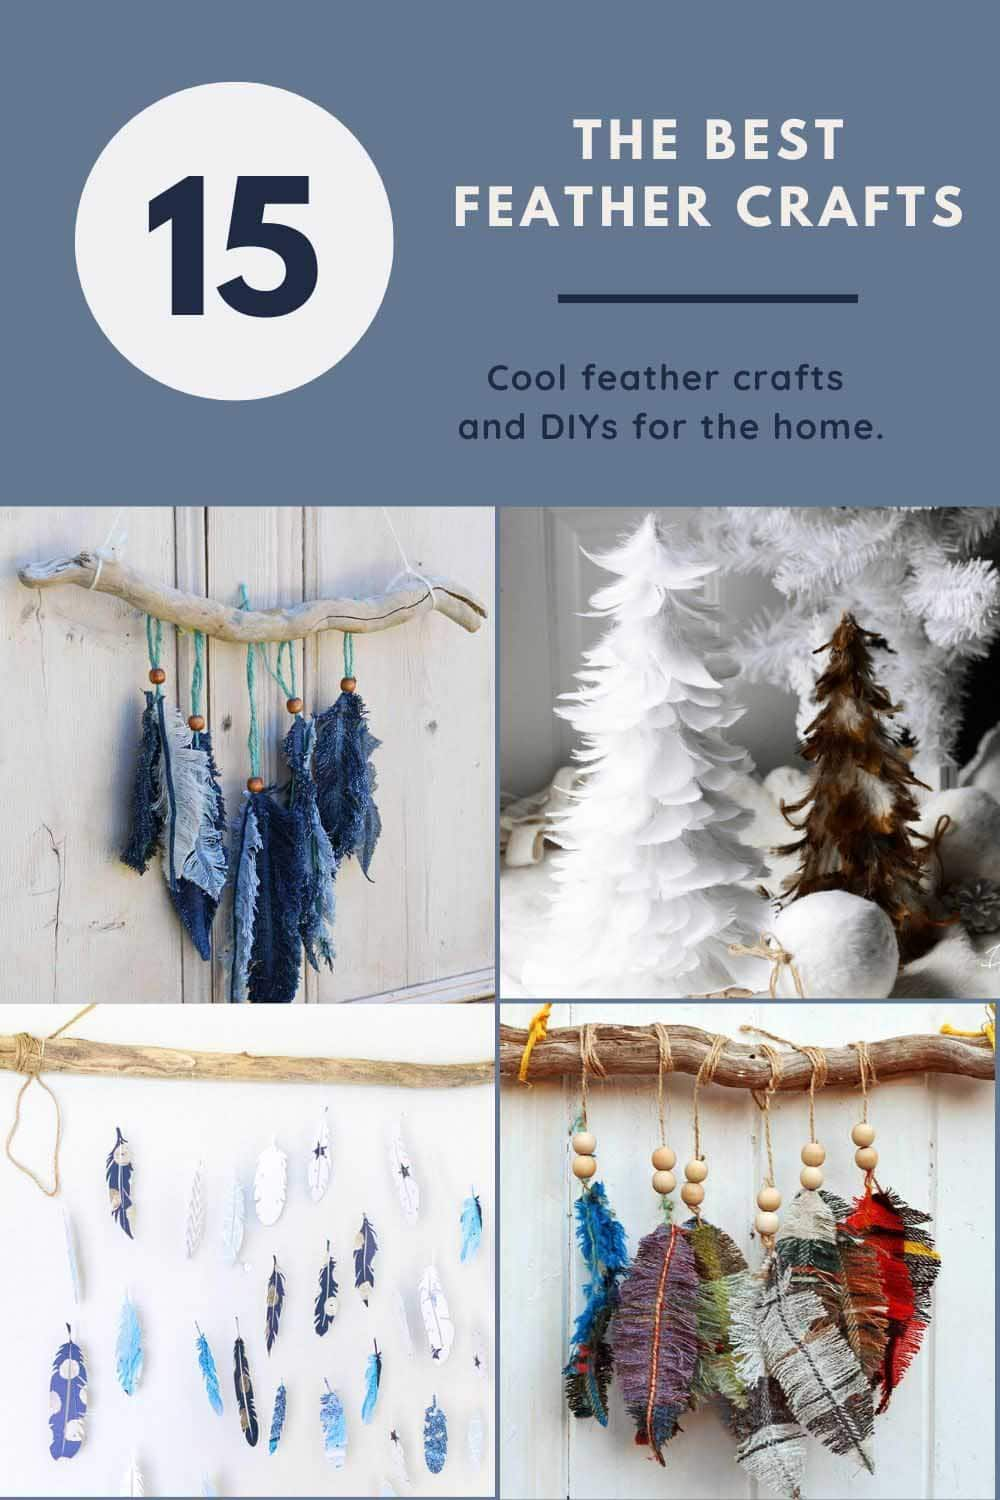 15 of the bEst feather crafts and DIYs